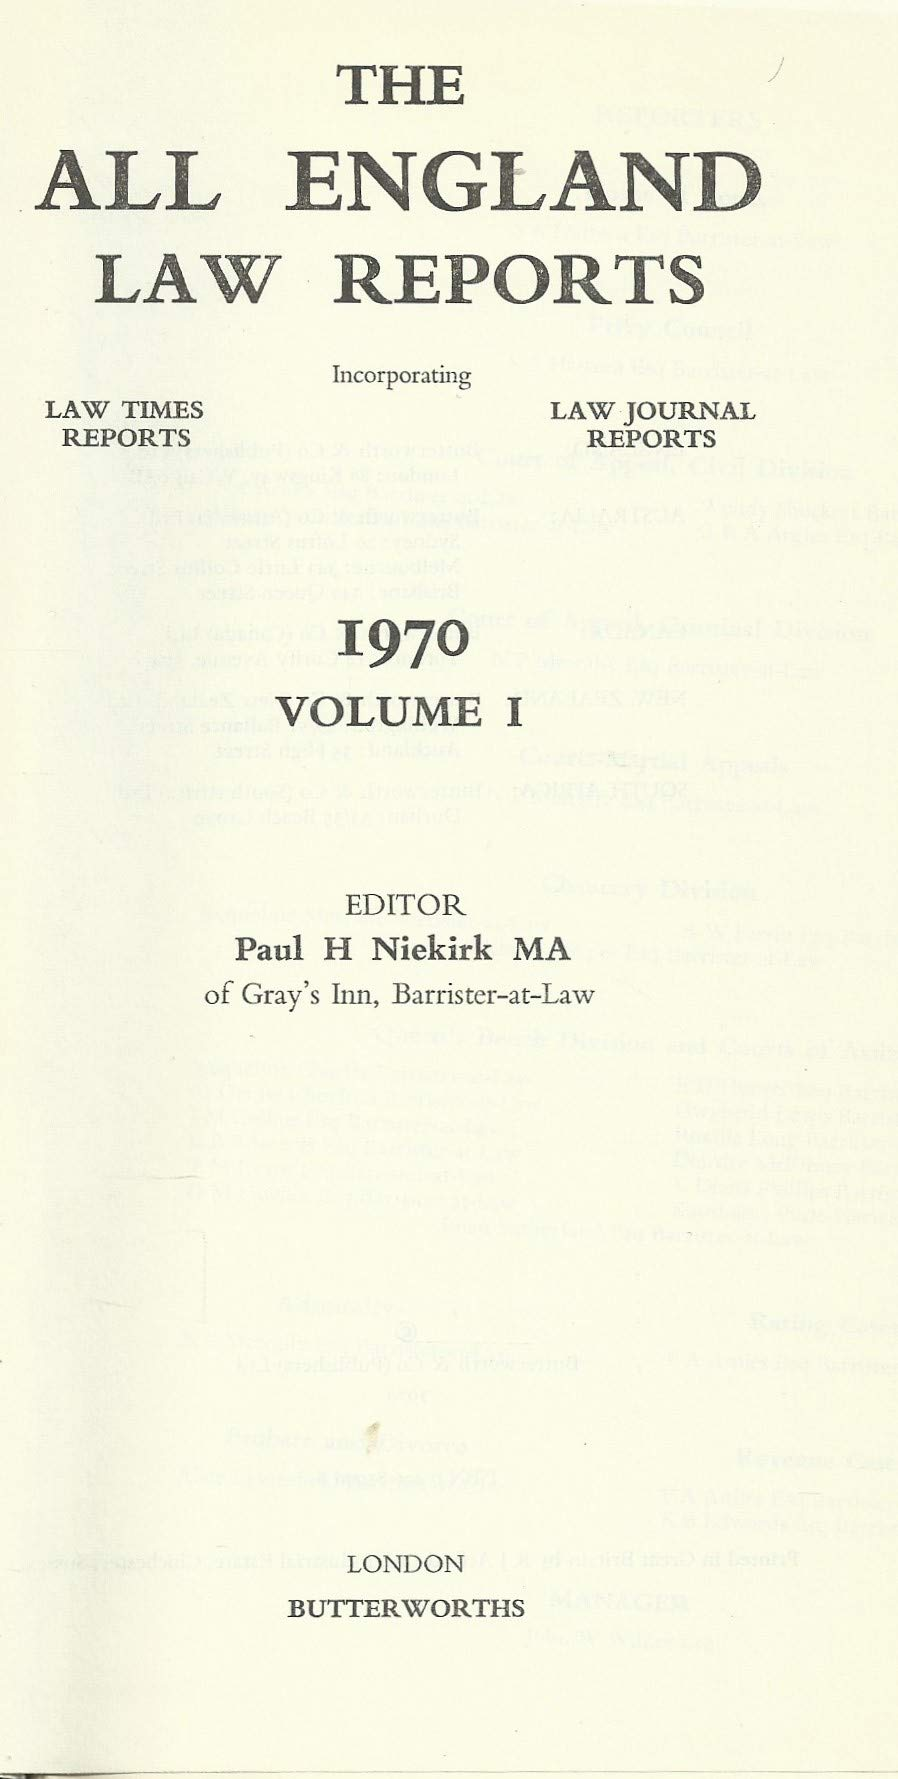 The All England Law Reports 1970 Volume 1